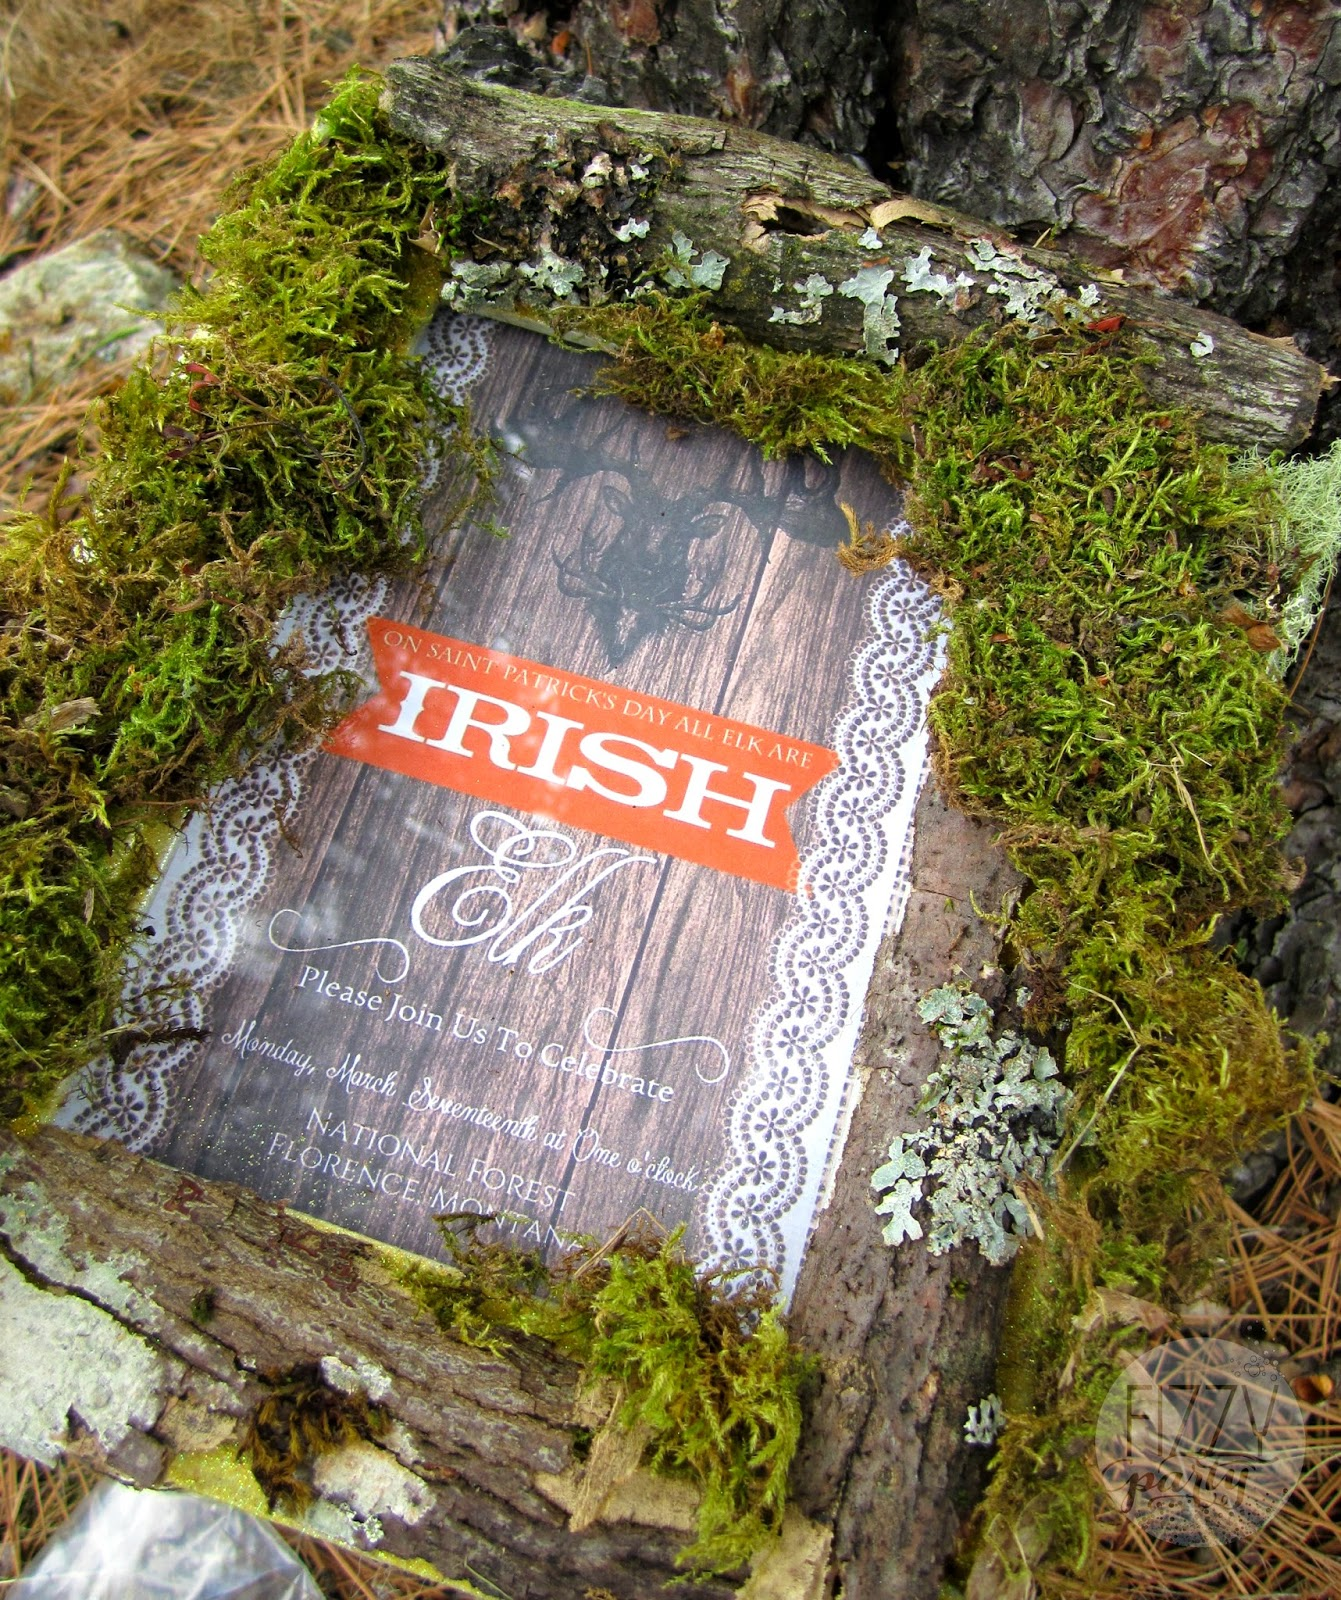 Irish Elk invite by Funky Monkey Designs for Fizzy Party